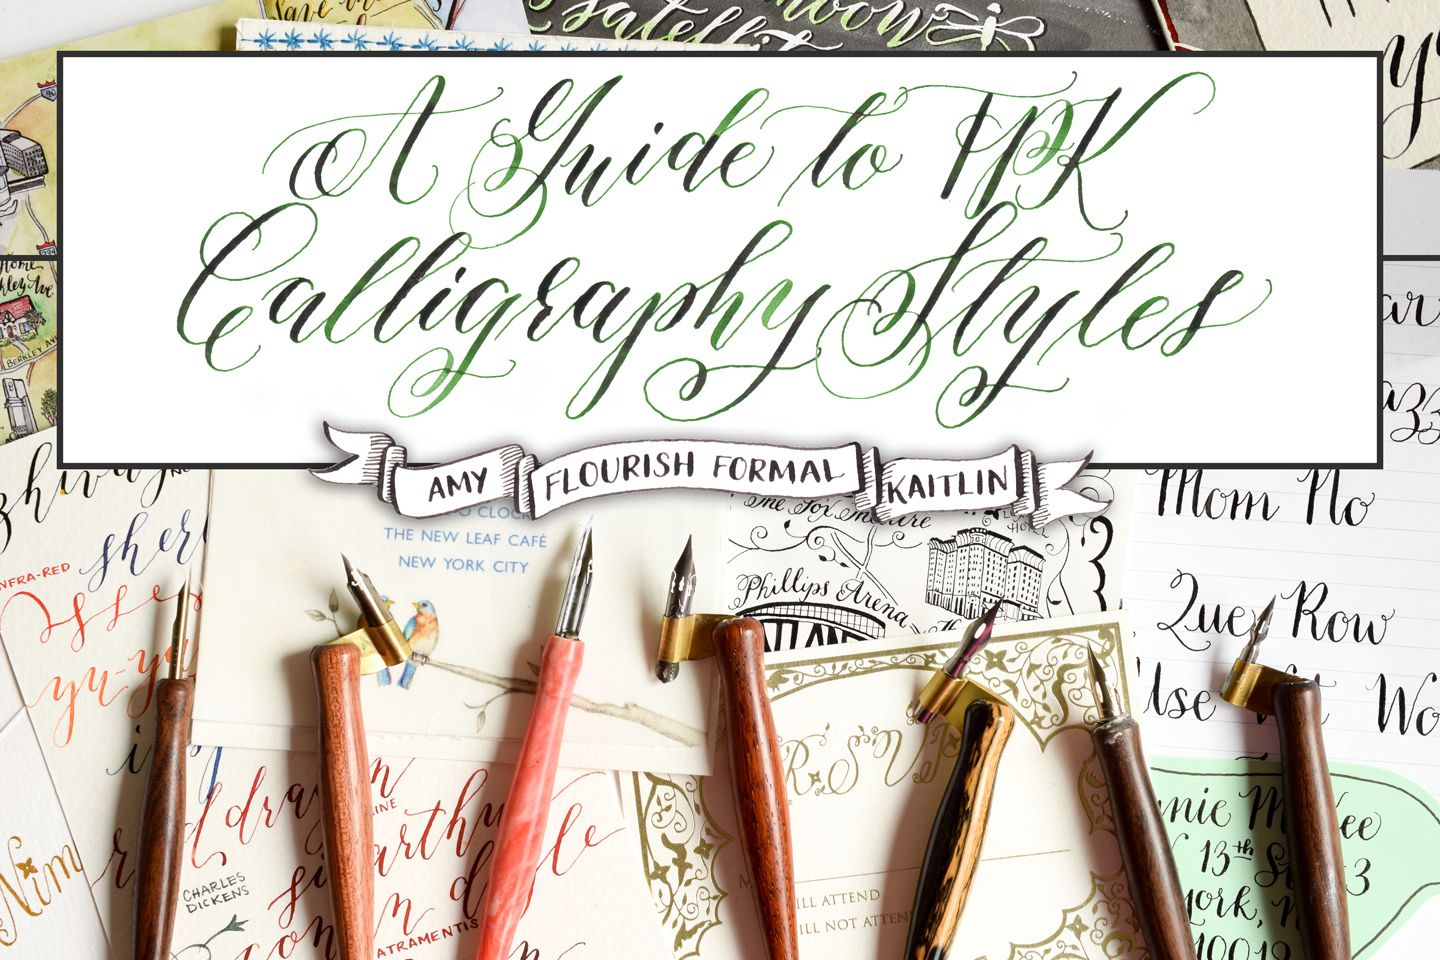 A Guide To Tpk Calligraphy Styles Amy Flourish Formal Kaitlin